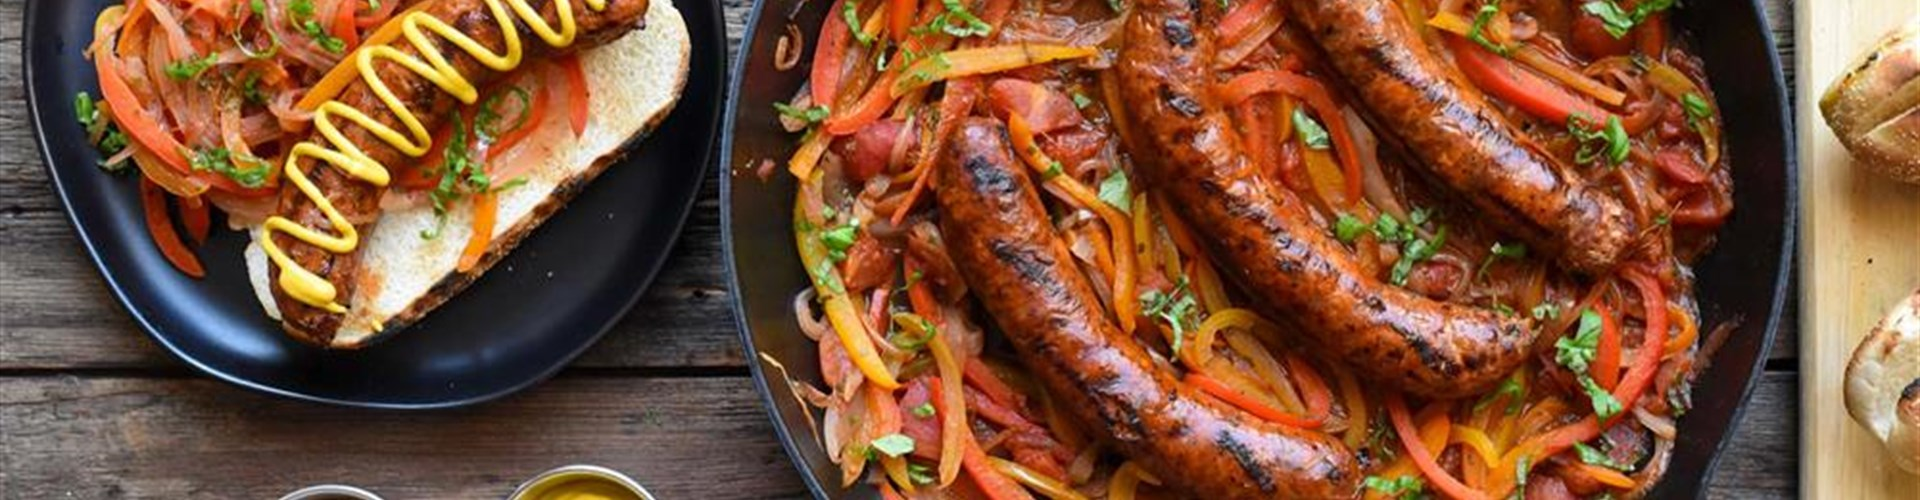 Hot Italian Sausage with Peppers and Onions